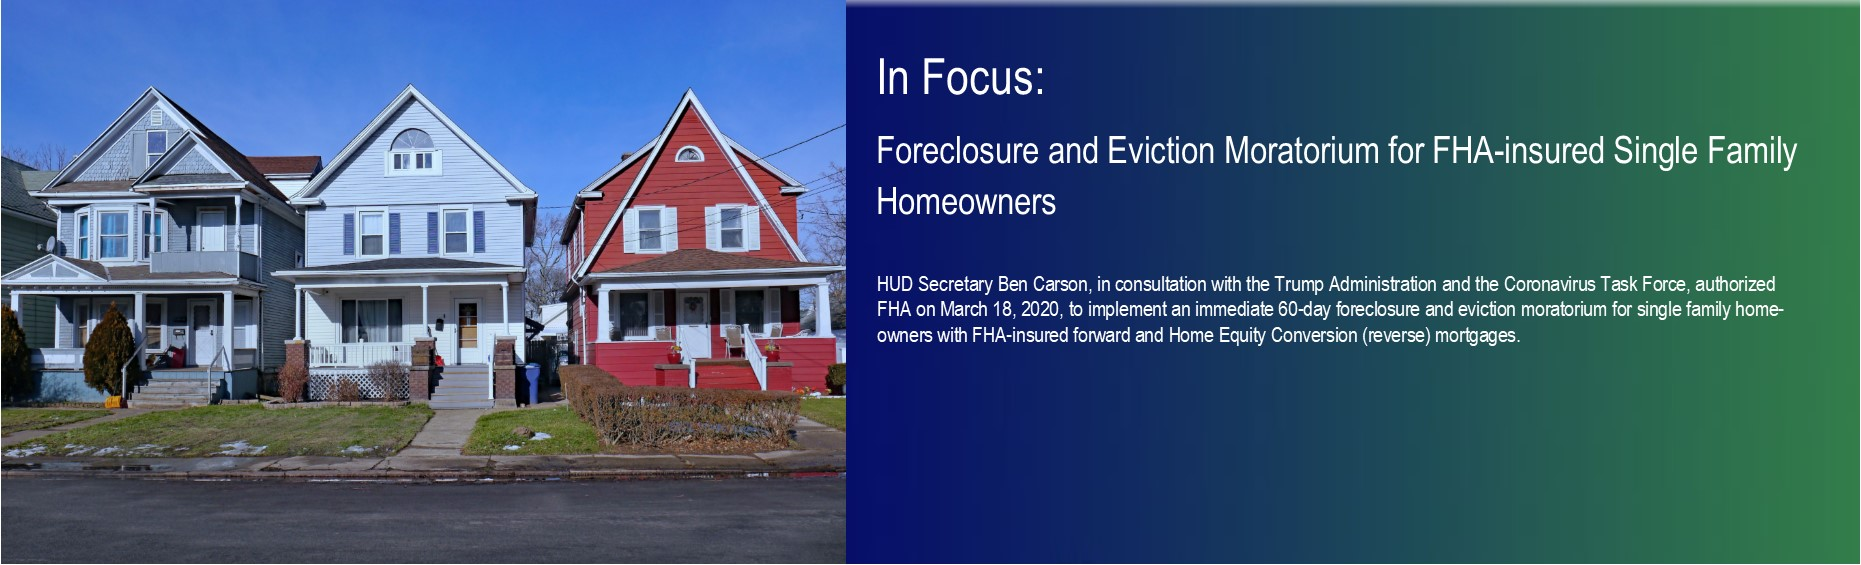 In Focus: Foreclosure and Eviction Moratorium for FHA-insured Single Family Homeowners. HUD Photo